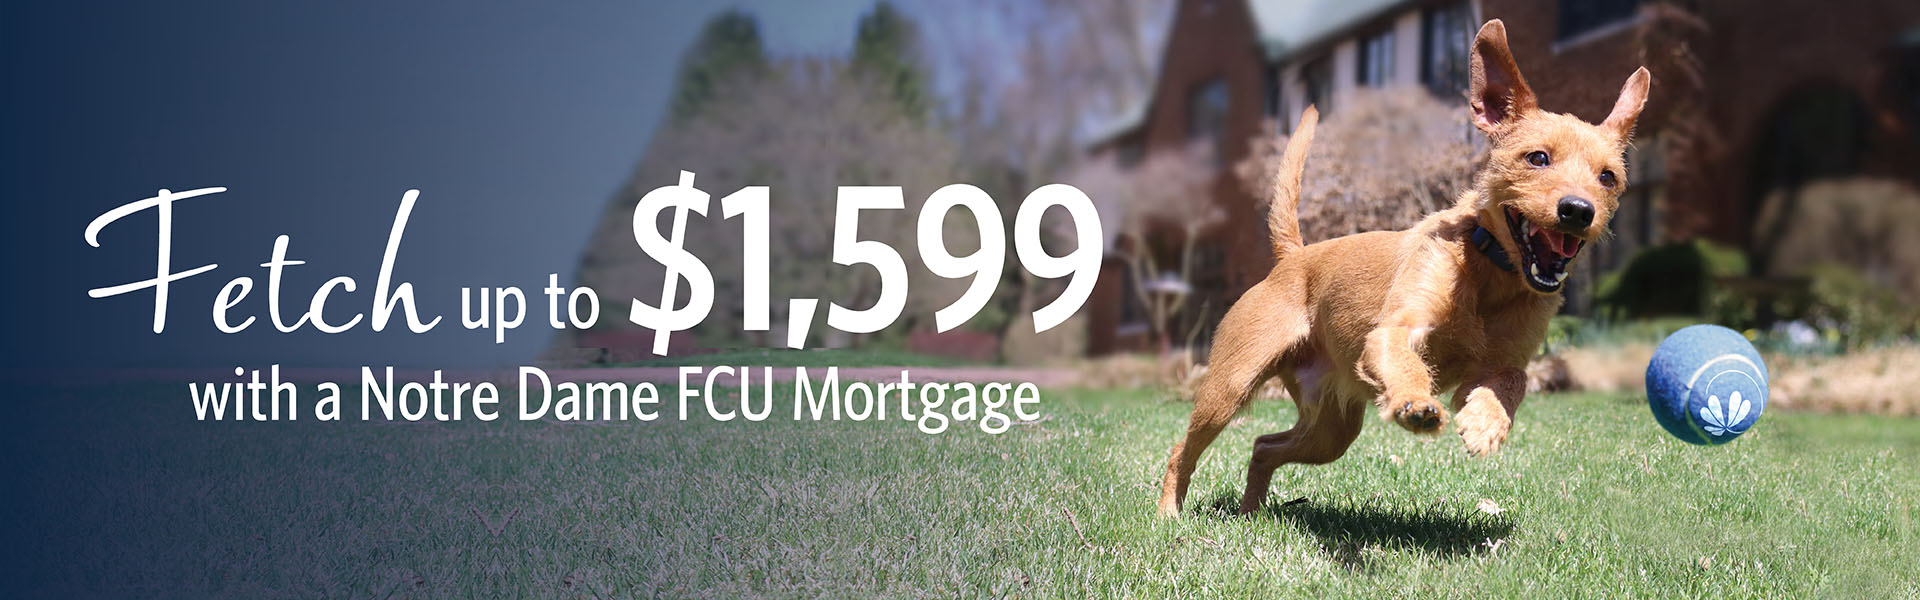 Fetch up to $1599 with a Notre Dame FCU mortgage